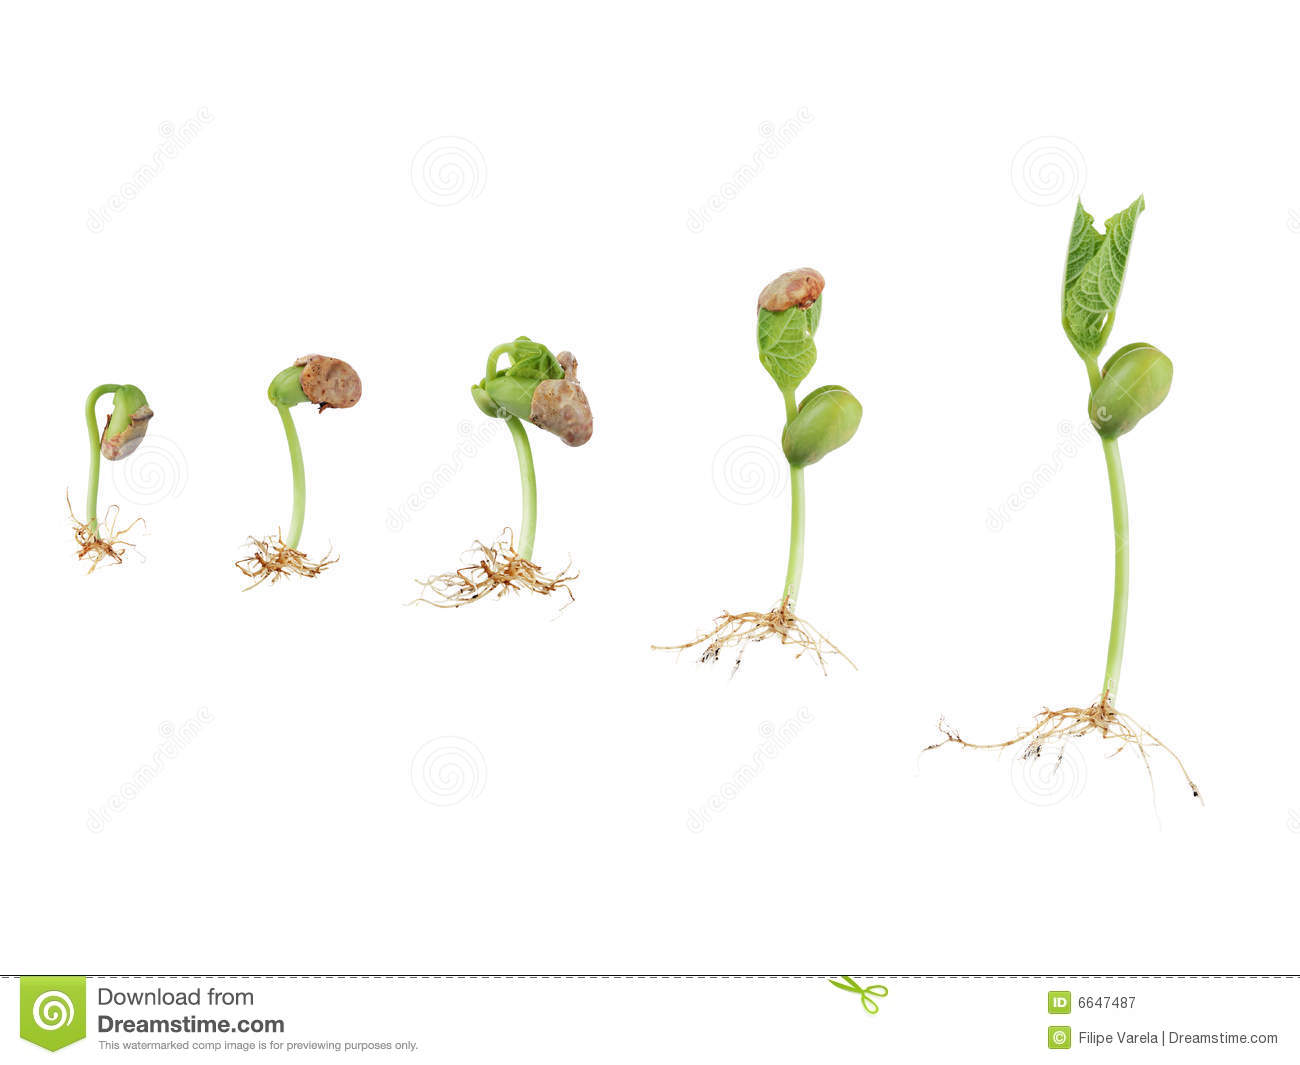 Seed germination stock vector illustration of botany 89479522 bean seed germination royalty free stock photography pooptronica Images